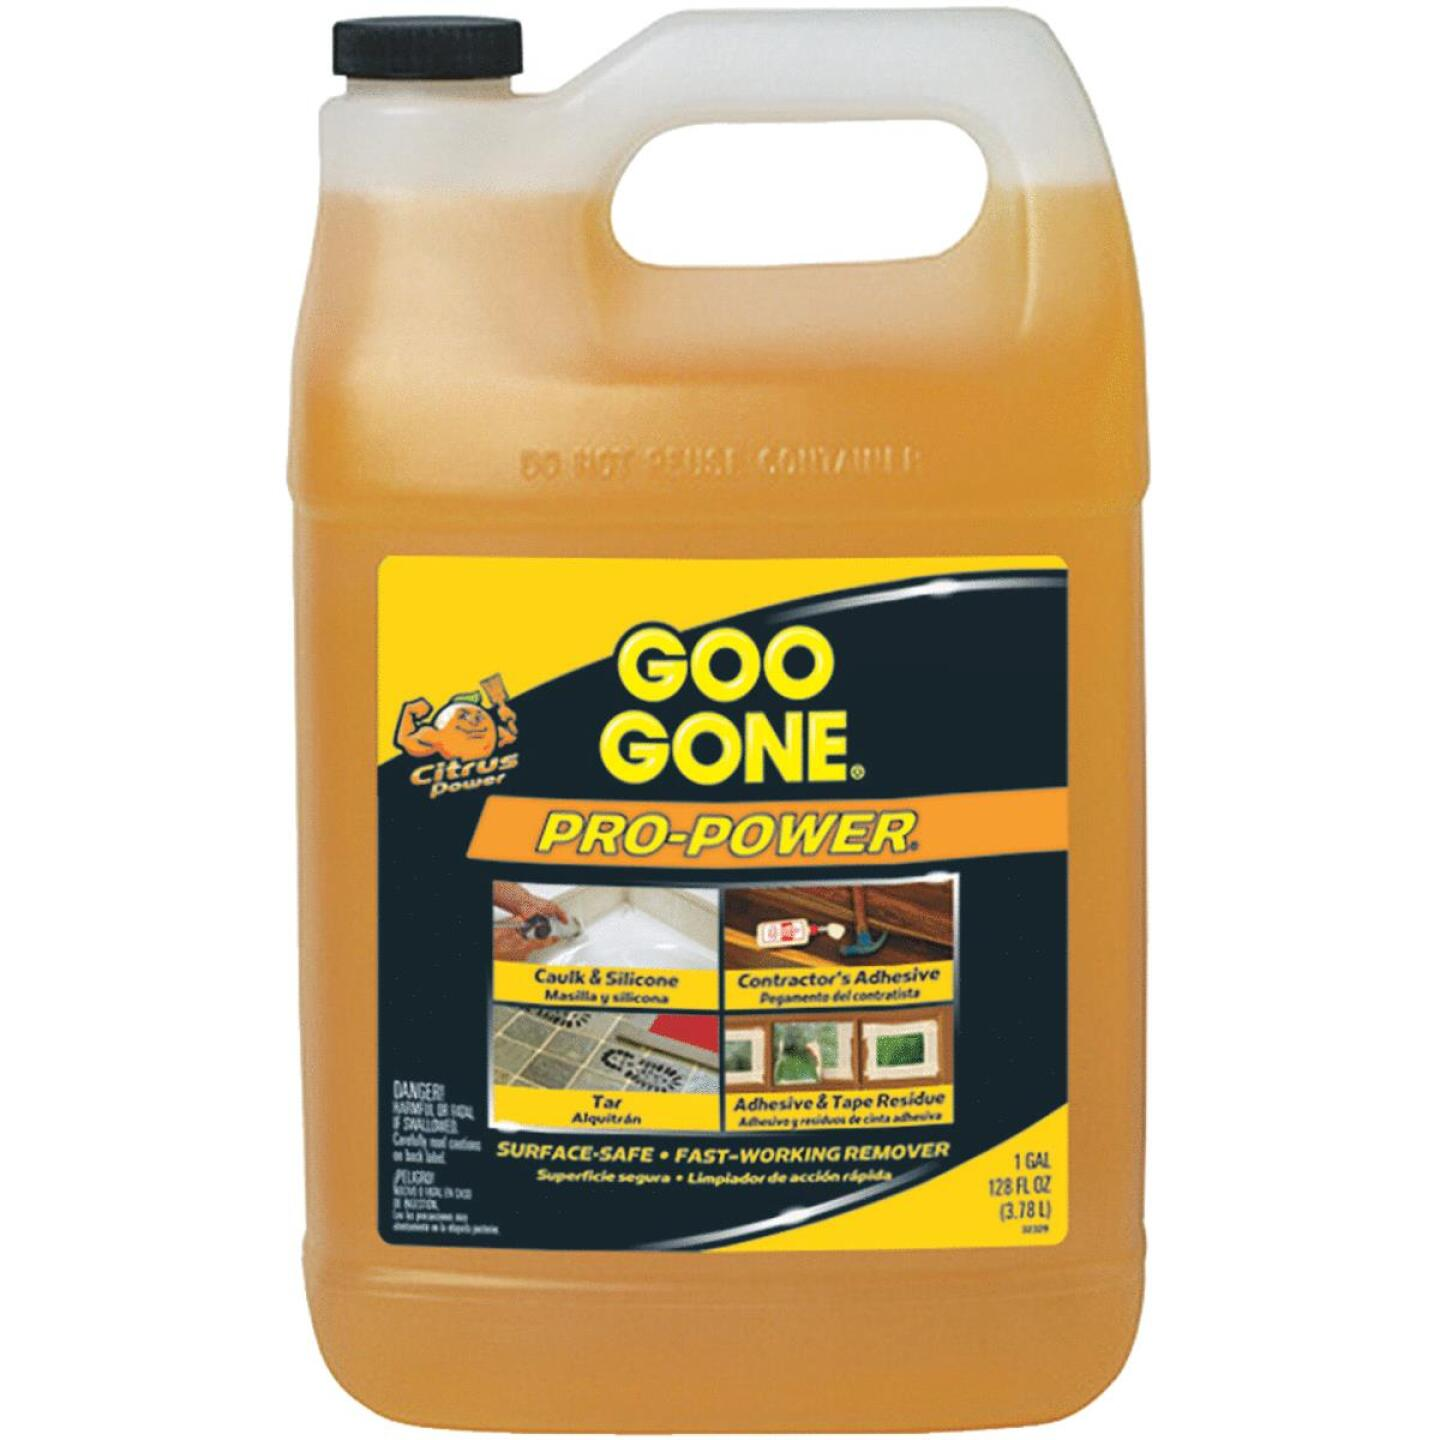 Goo Gone 1 Gal. Pro-Power Adhesive Remover Image 128